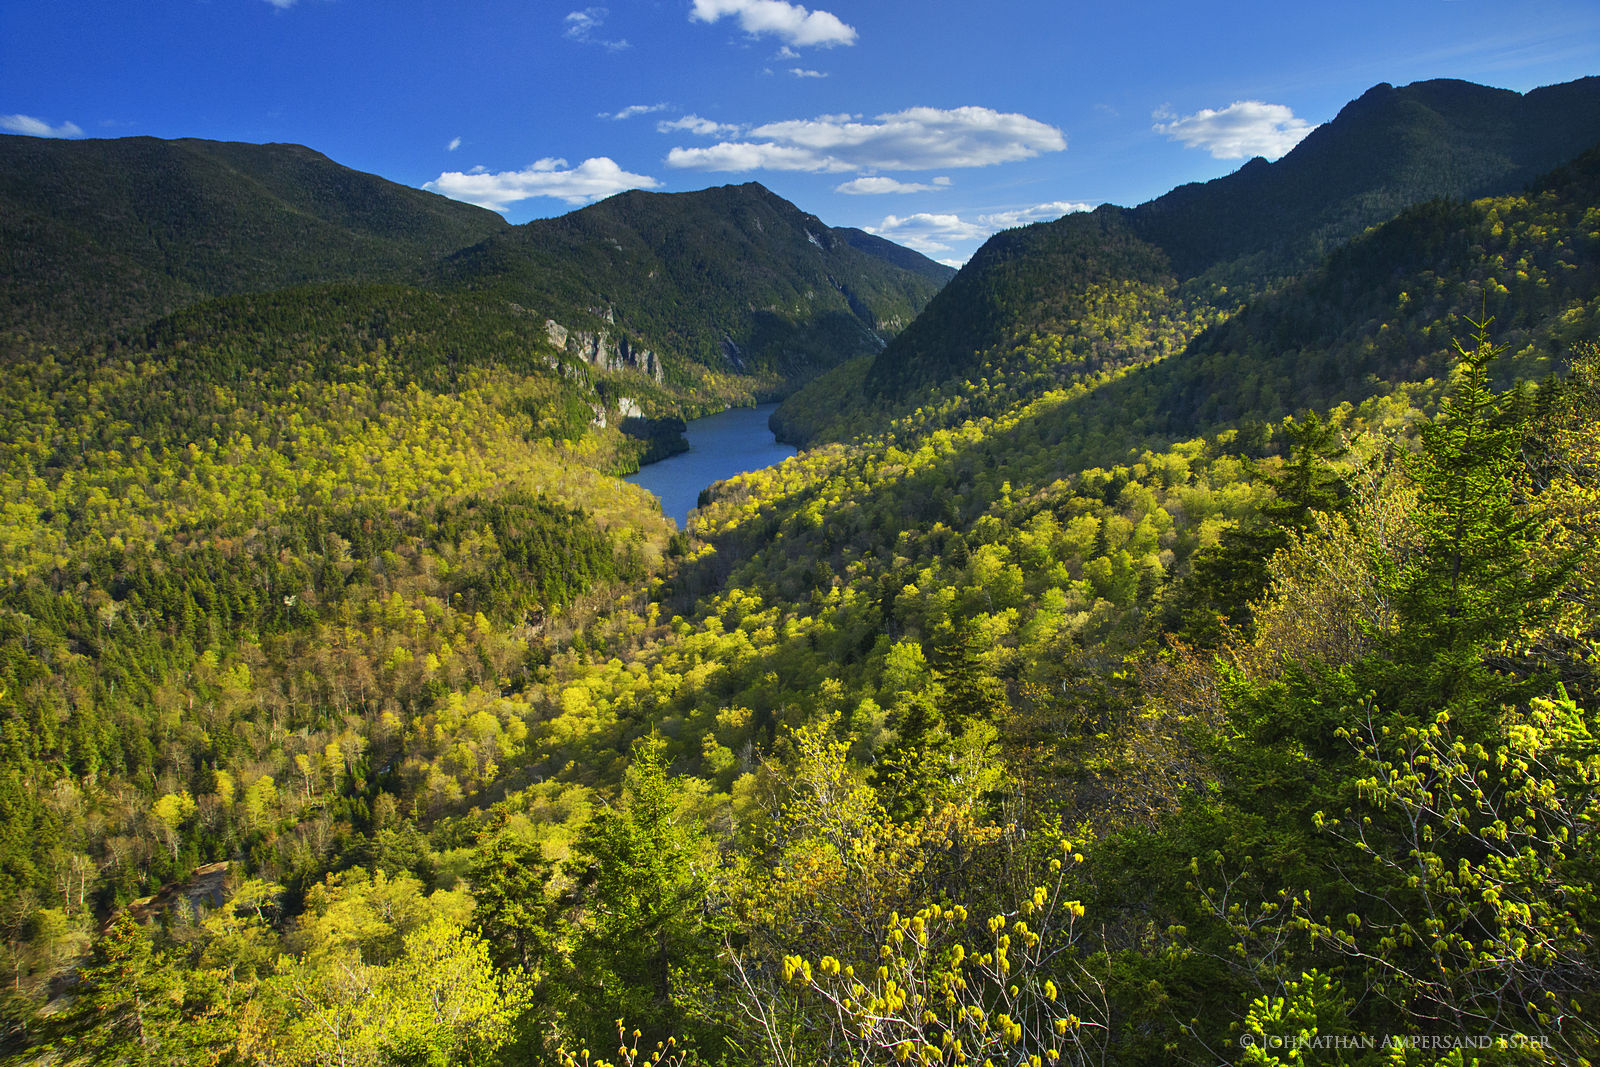 Ausable Valley,Lost Lookout,Ausable Club,Lower Ausable Lake,Ausable Lake,Colvin Mt,Sawteeth Mt,Colvin,Sawteeth,spring,greenery,, photo